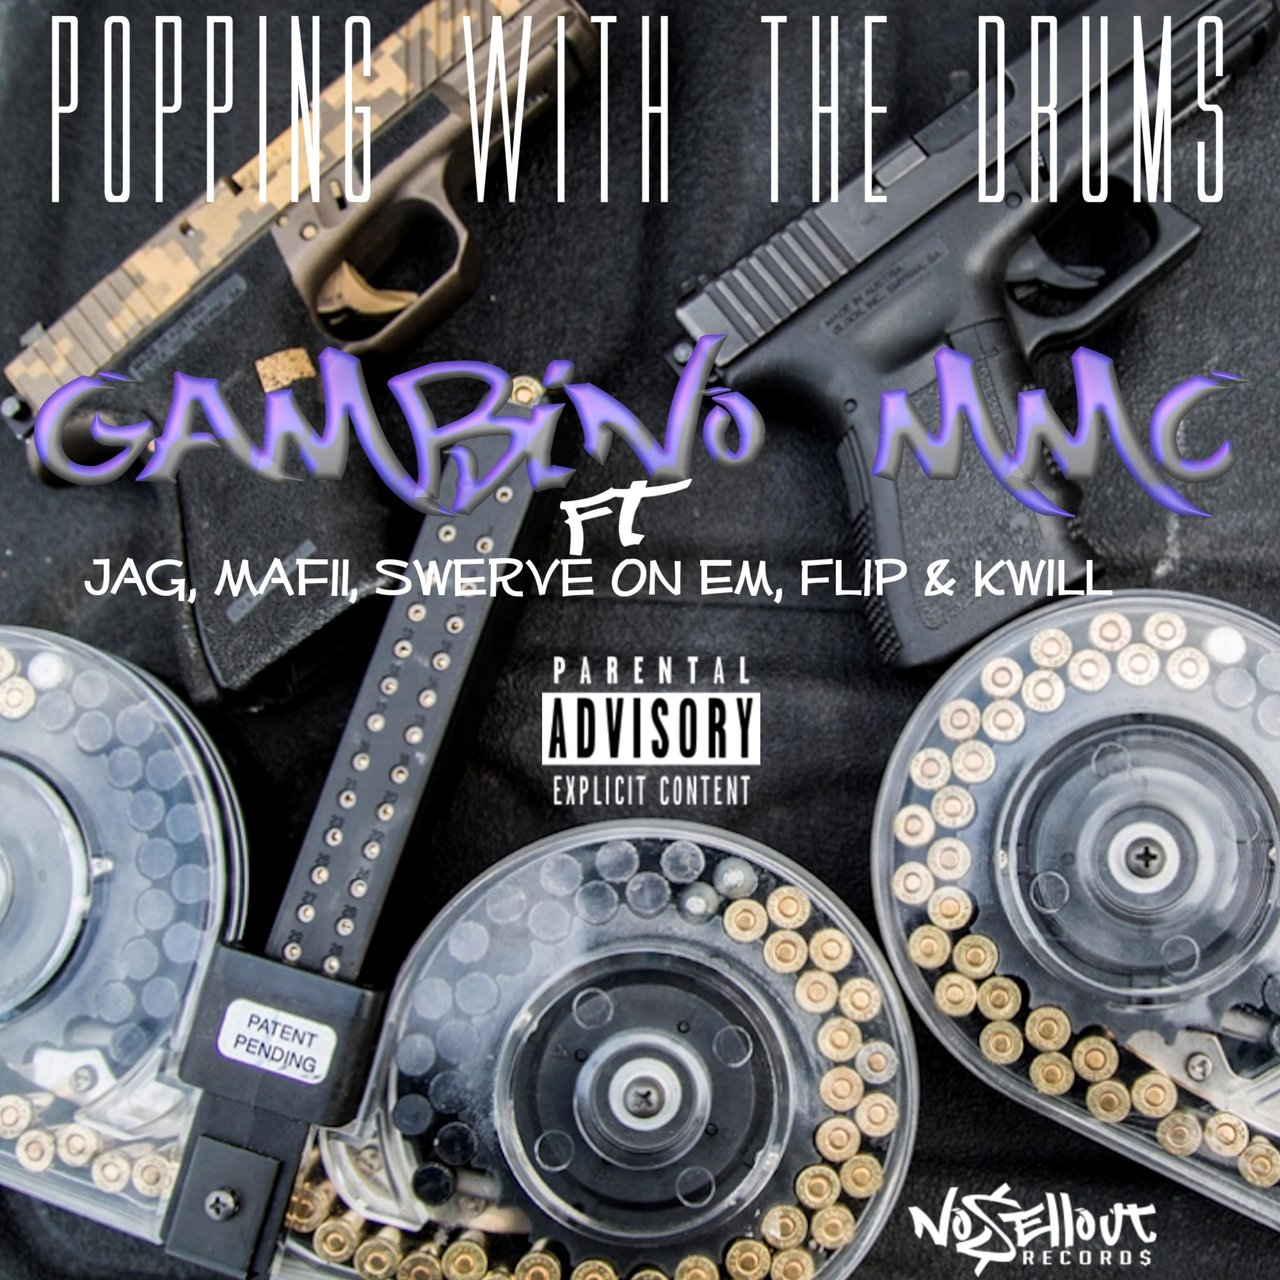 Popping With the Drums (feat. Jag, Mafii, Swerve on Em, Flip & Kwill)